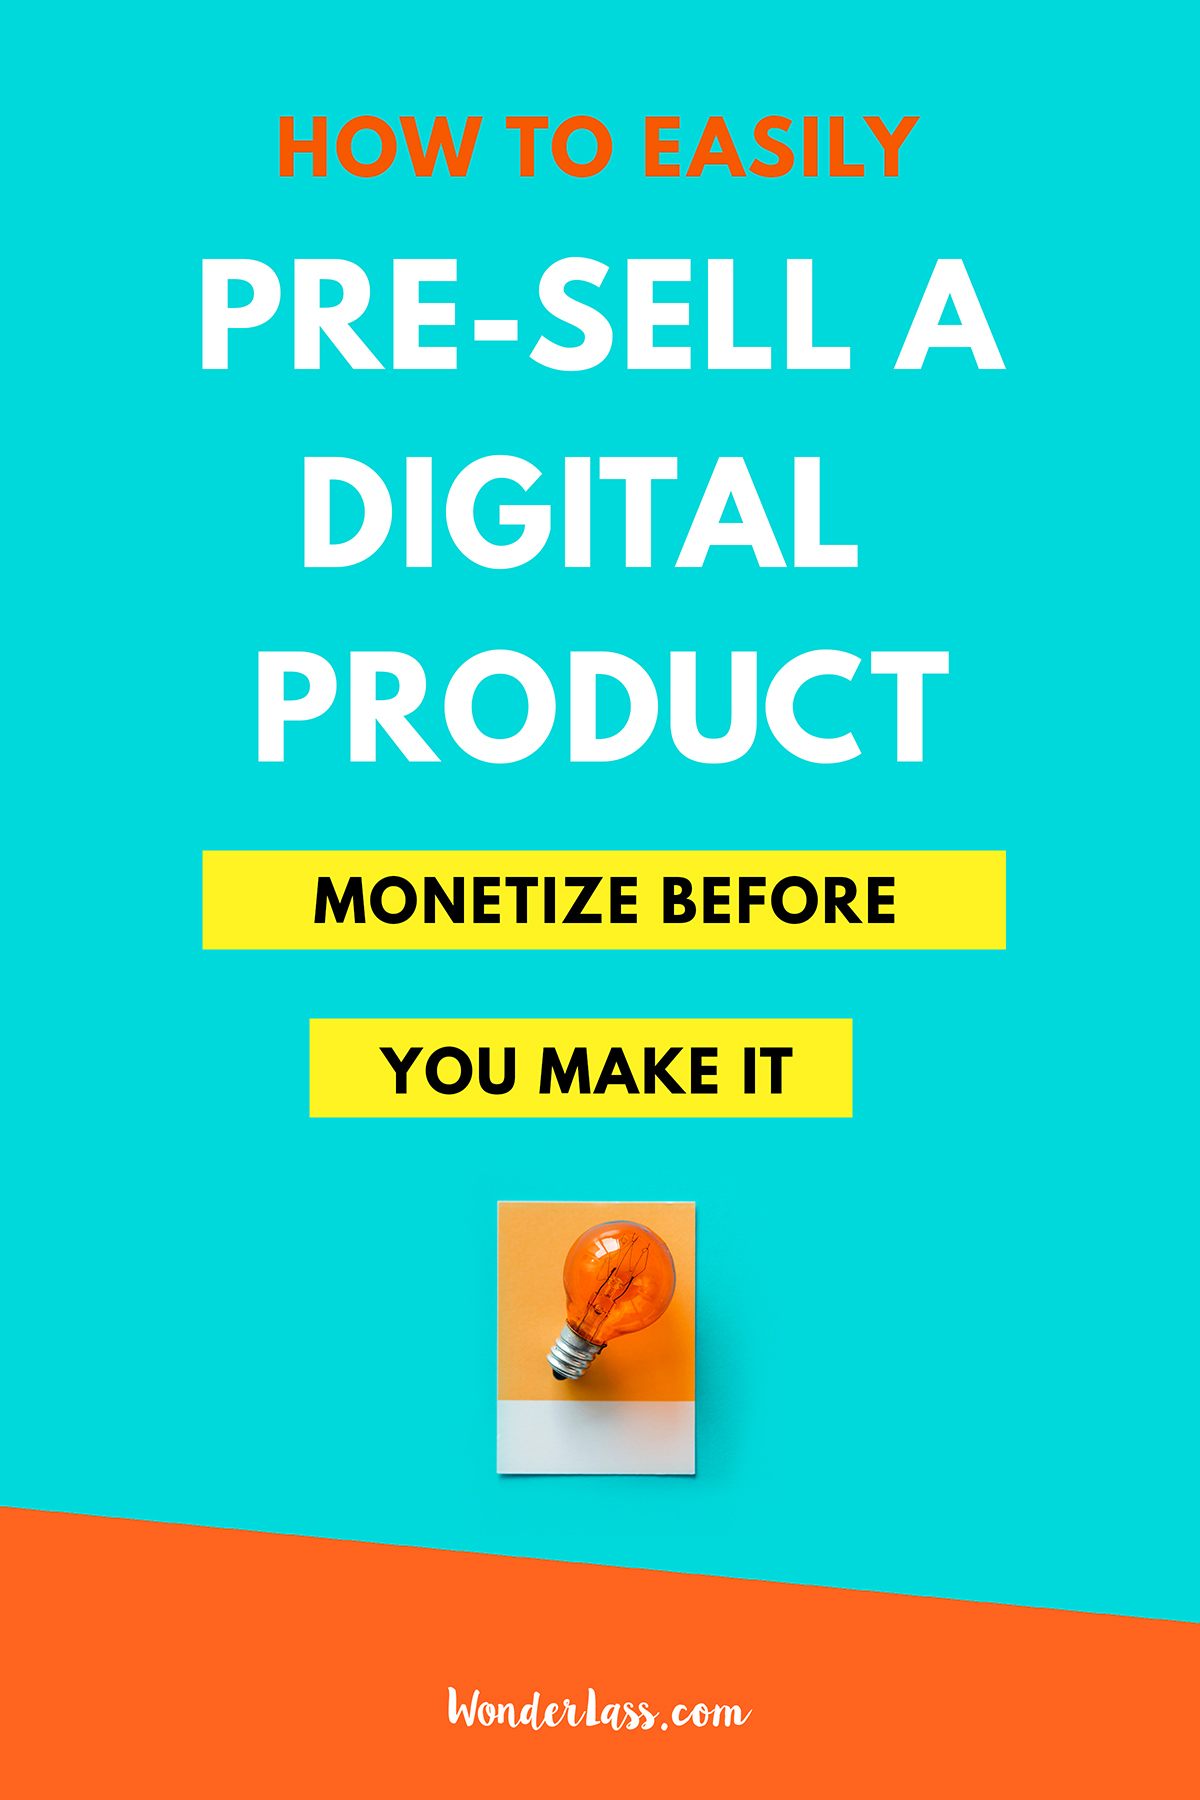 How to Quickly & Easily Pre-Sell a Digital Product (Monetize it BEFORE You Make it!) | Wonderlass  Pre-selling is an ESSENTIAL step to successfully creating and selling digital products that your audience will love, so be sure to check out this blog post on how you can do it quickly and easily.  #passiveincome #passiveincomestrategies #howtomakepassiveincome #onlinebusinesstips #onlinebusinesstraining #howtomakemoresales #howtodoapresell #howtolaunchadigitalproduct #howtoselladigitalproduct